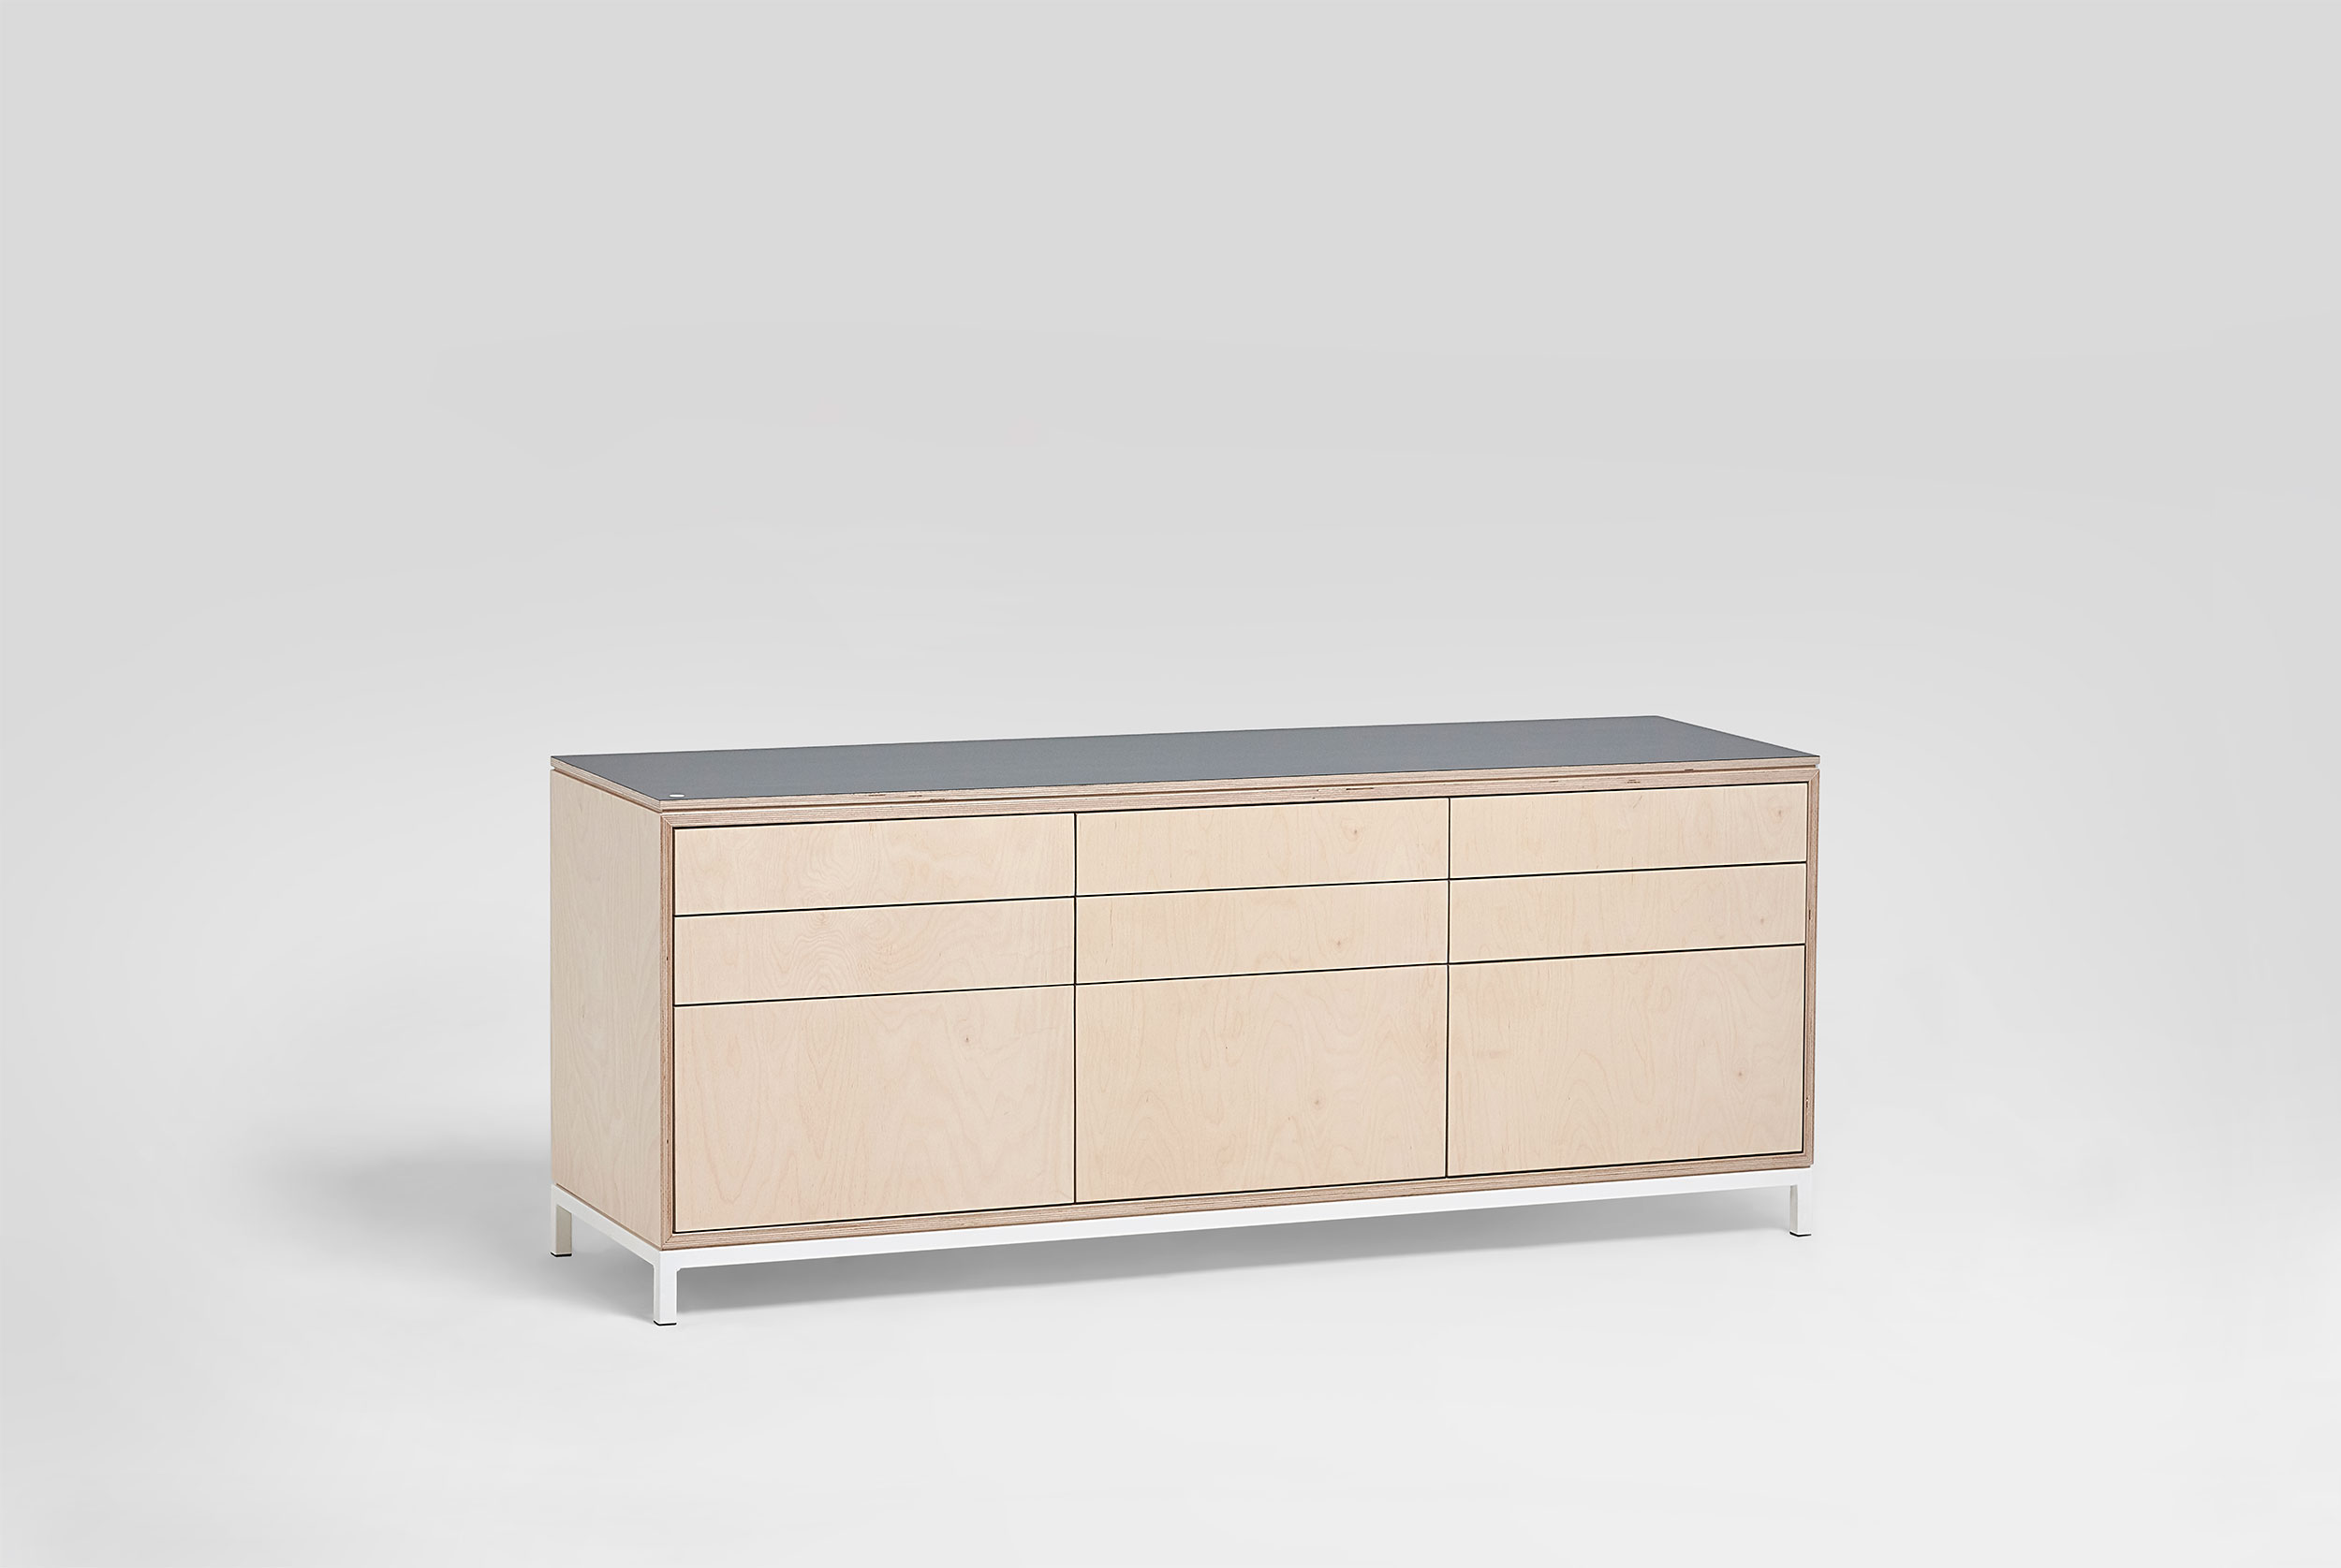 cuboid-credenza-front